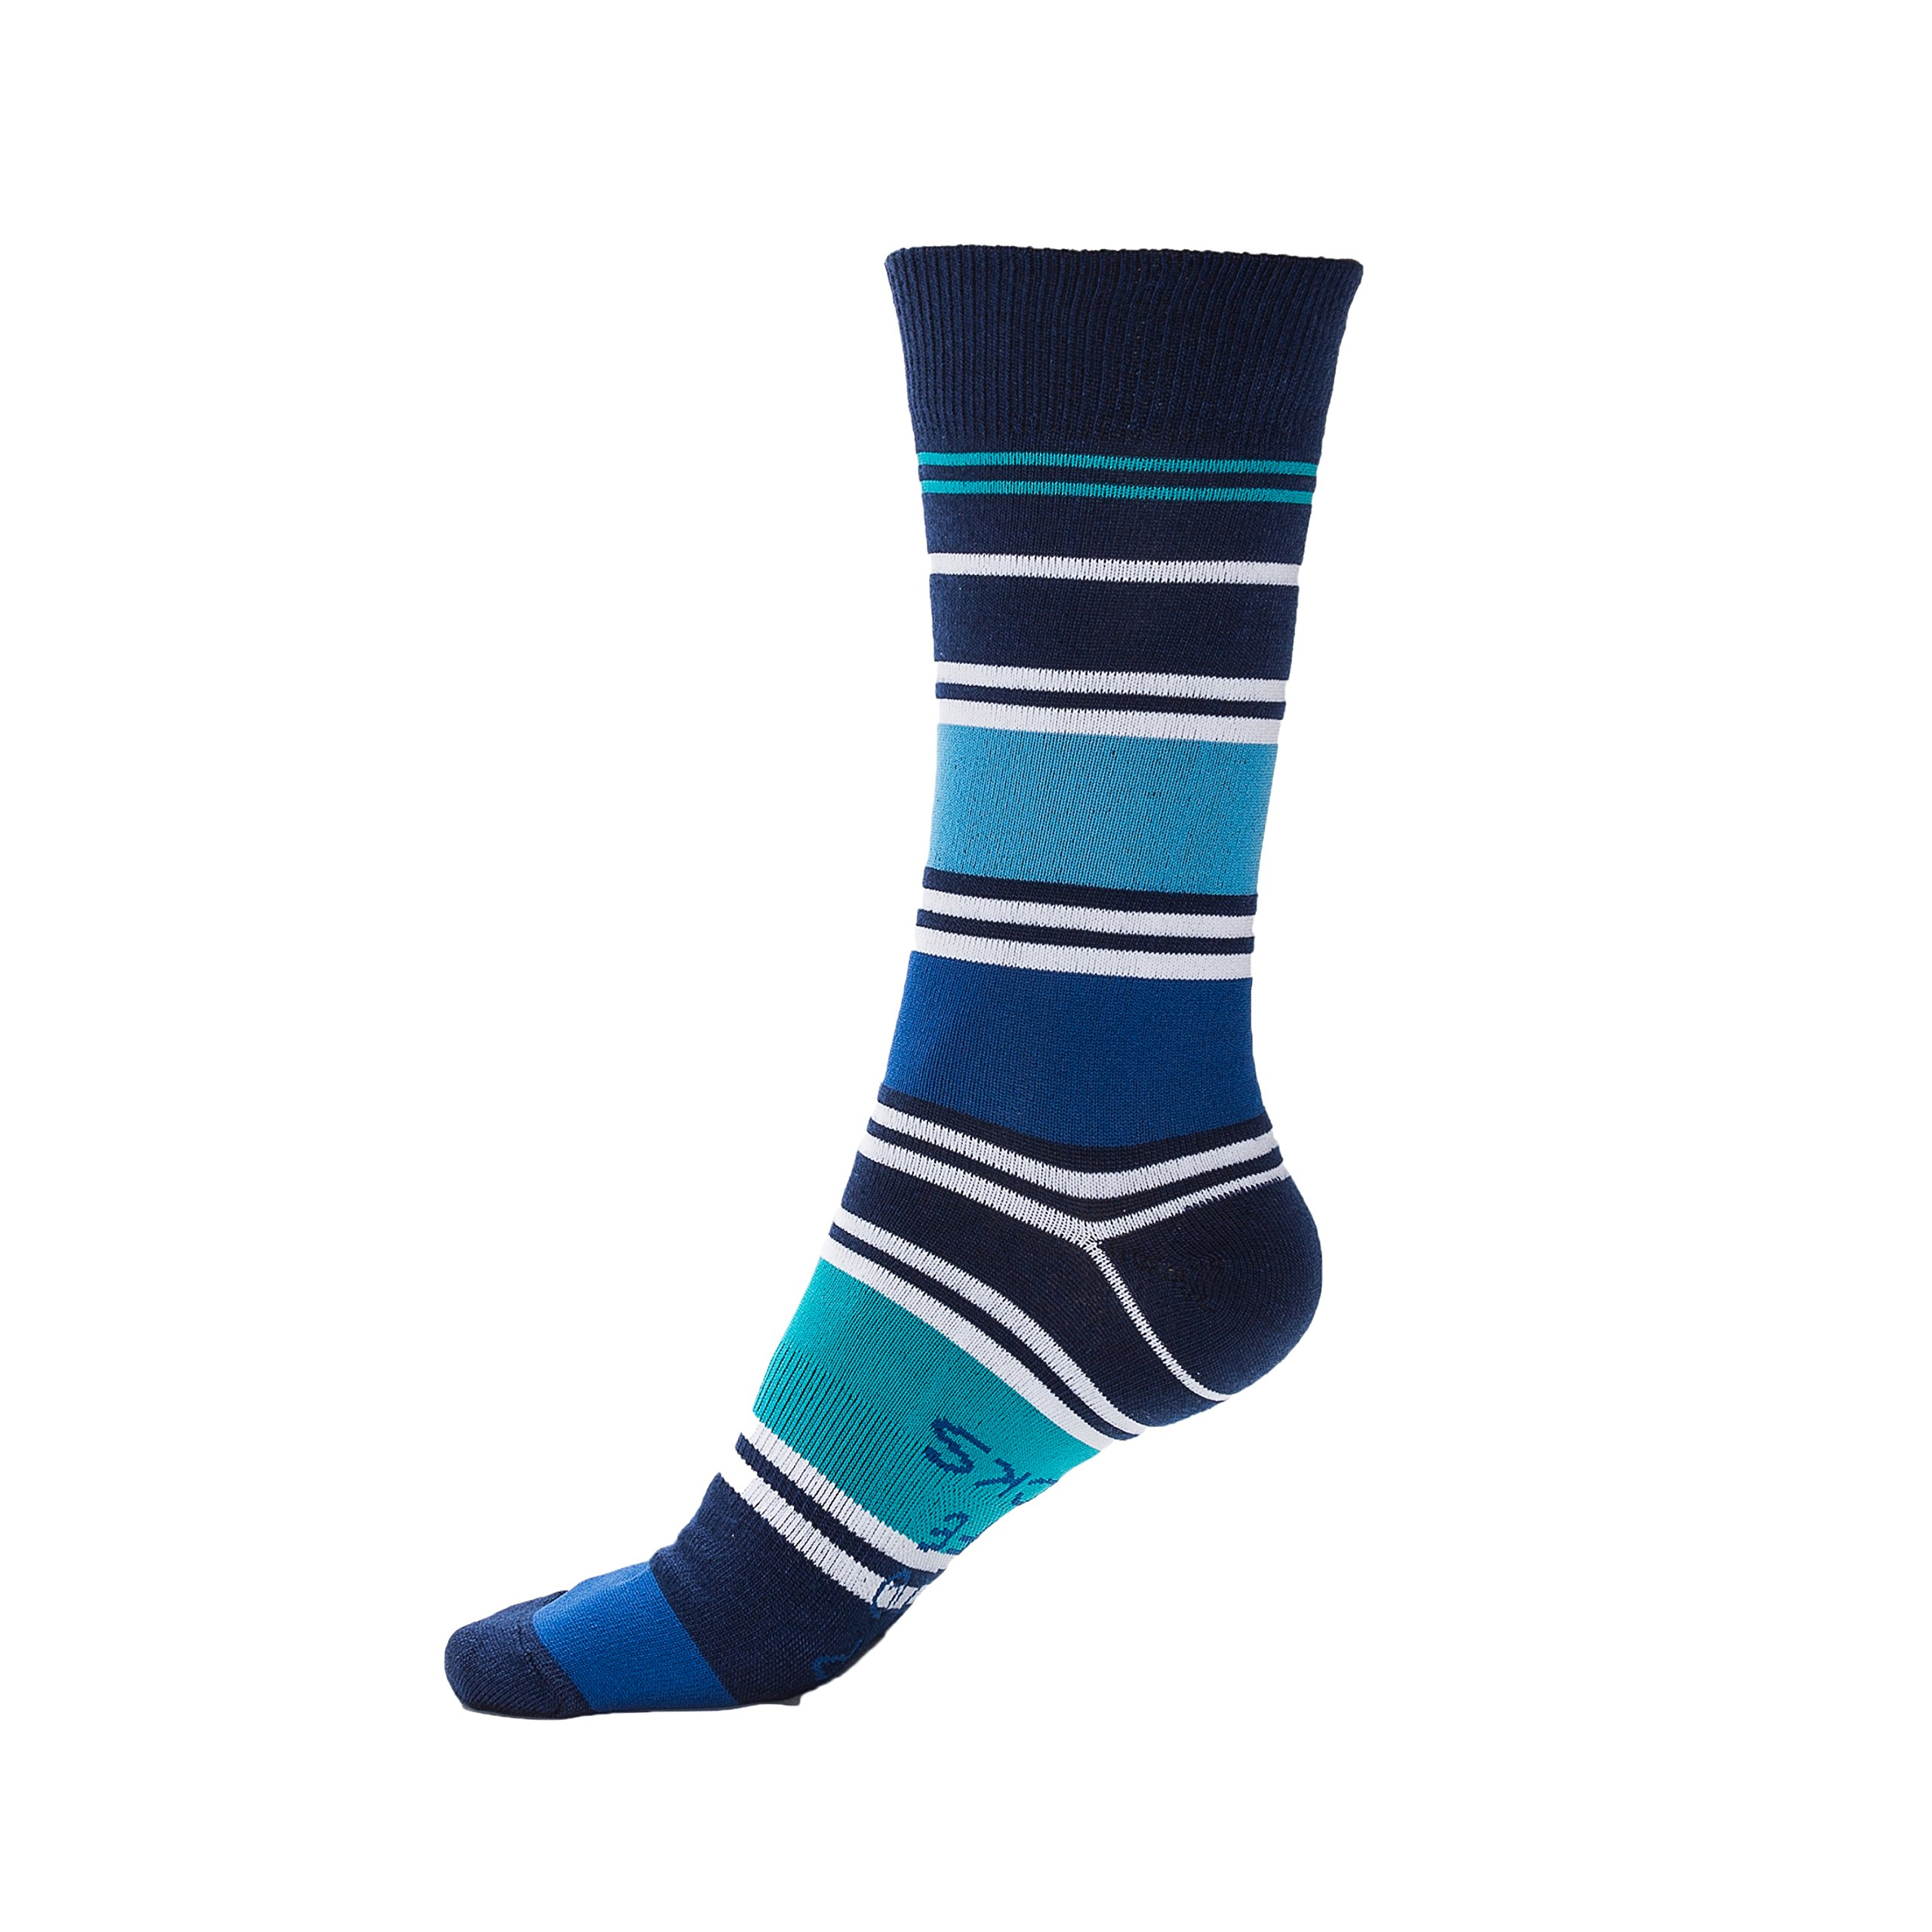 Men's Socks: Honor by Step Into Life Socks Stylish Casual Funky Fun Cotton